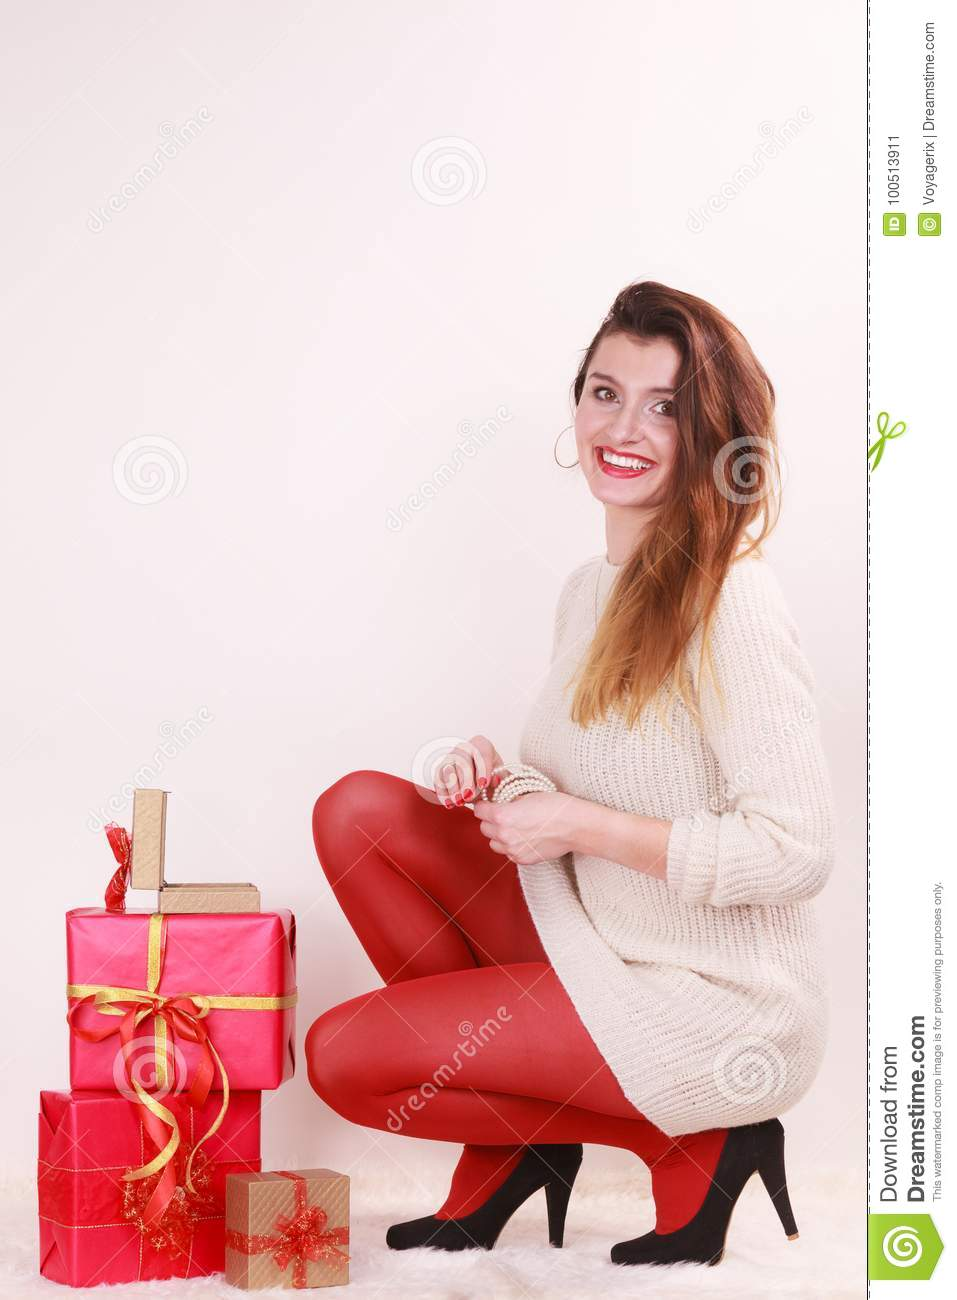 Woman With Many Christmas Gift Boxes Stock Image - Image of ...